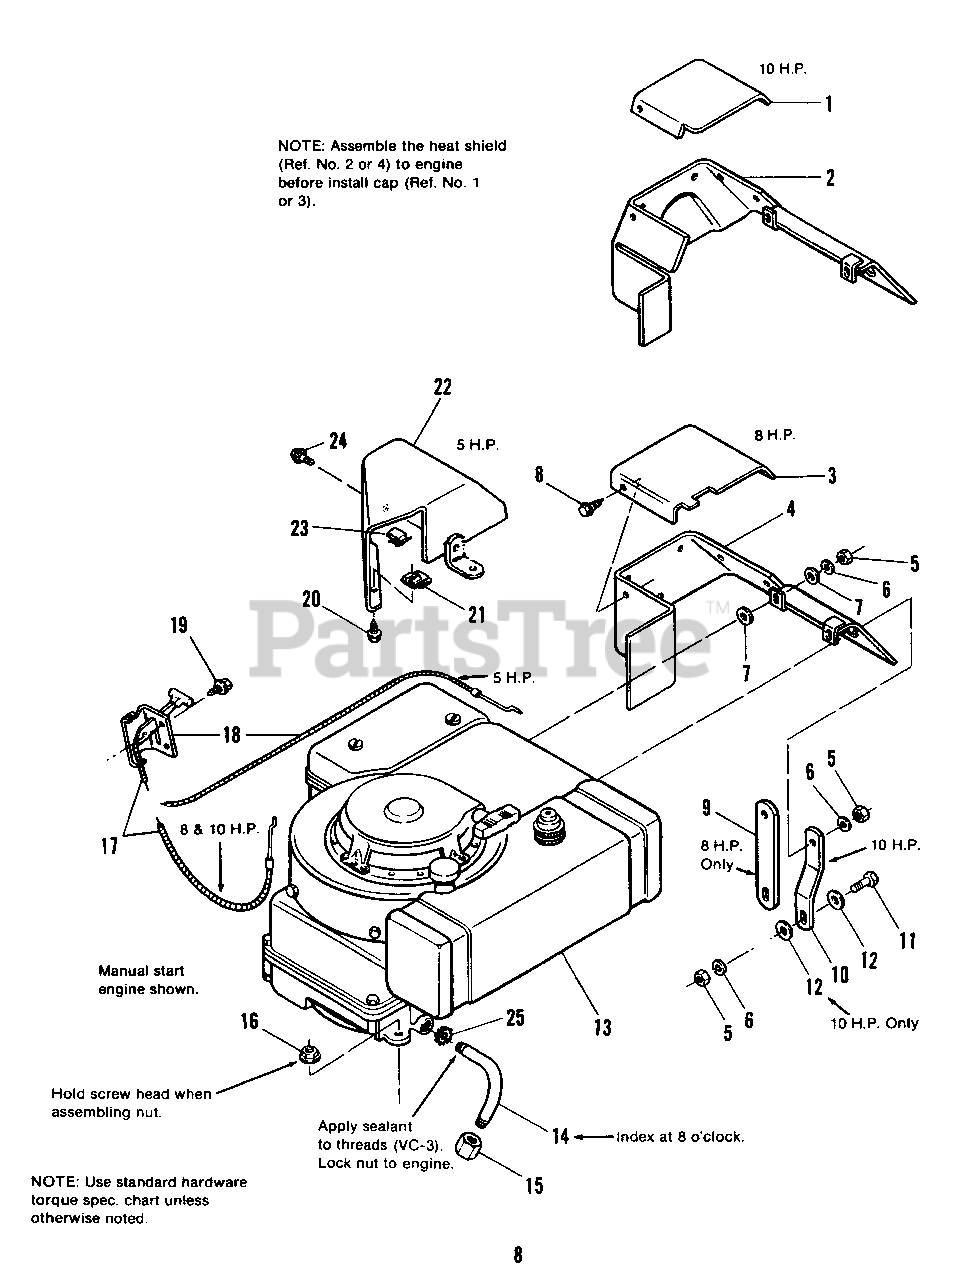 Simplicity 3110 (1690528) - Simplicity Rear-Engine Riding Mower Engine  Drive Group - Engine Section Parts Lookup with Diagrams | PartsTree | Group Engine Diagram |  | PartsTree